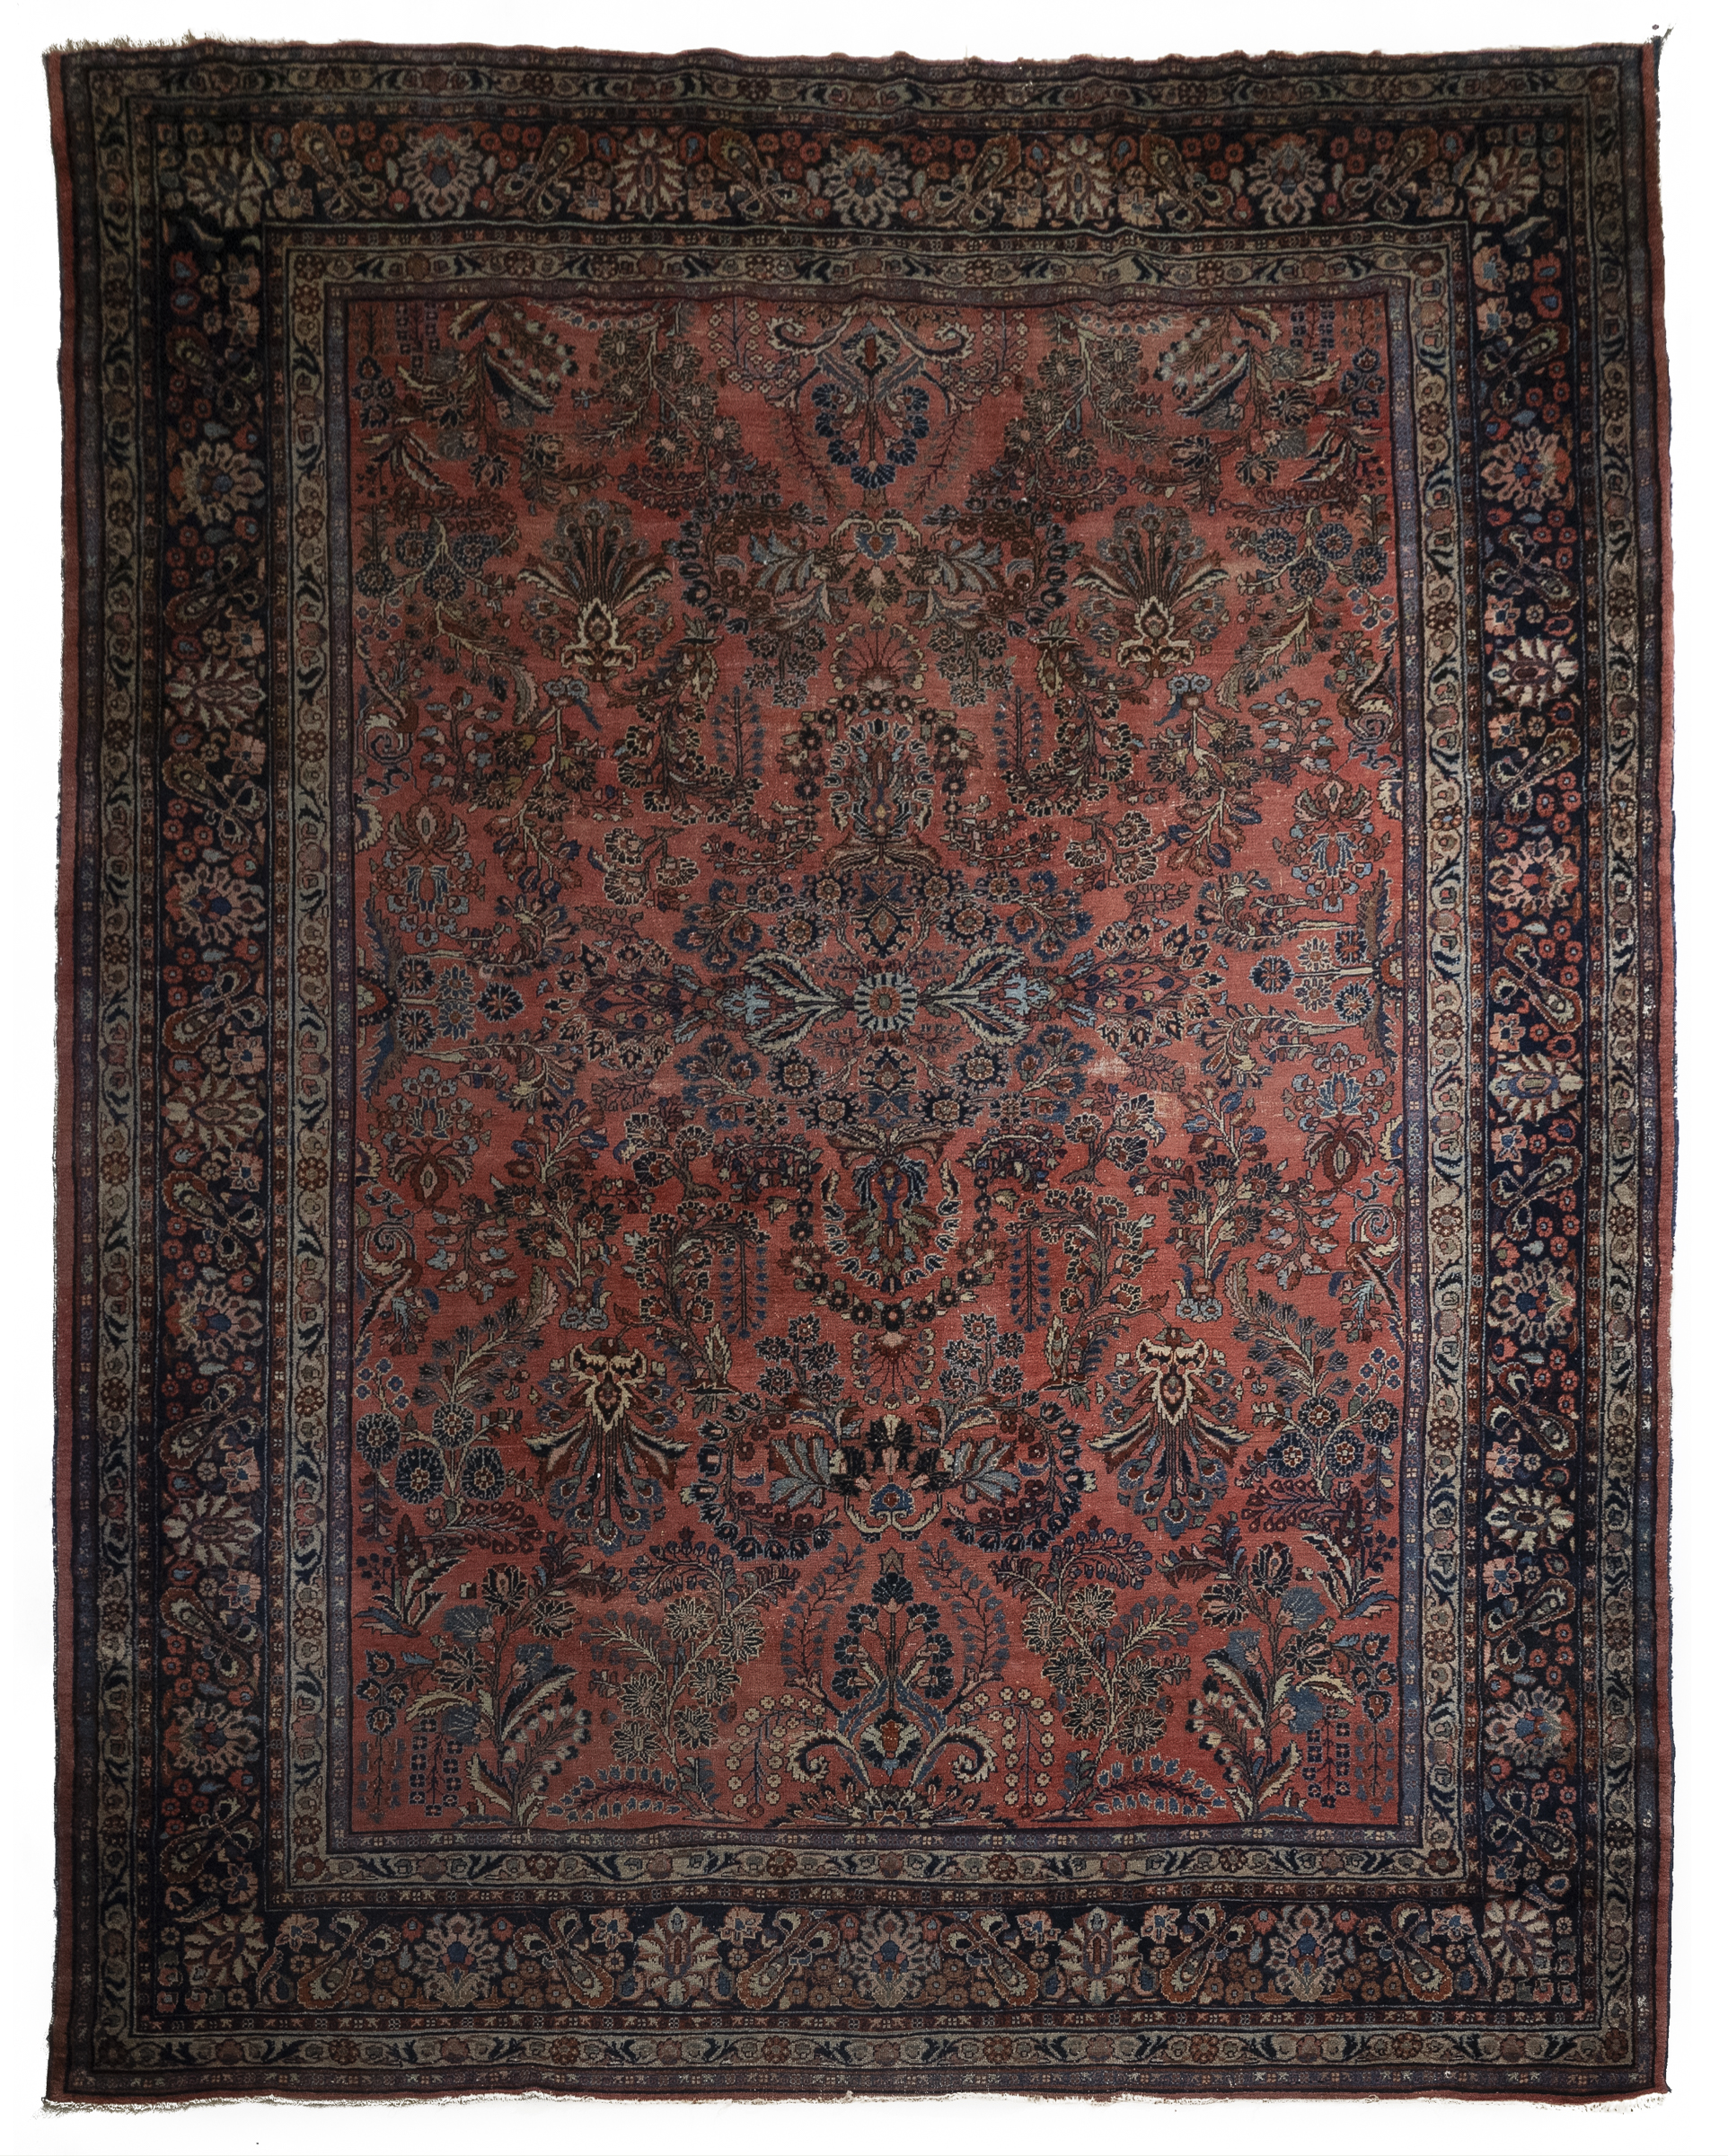 Lilihan Carpet, Persian, c.1930